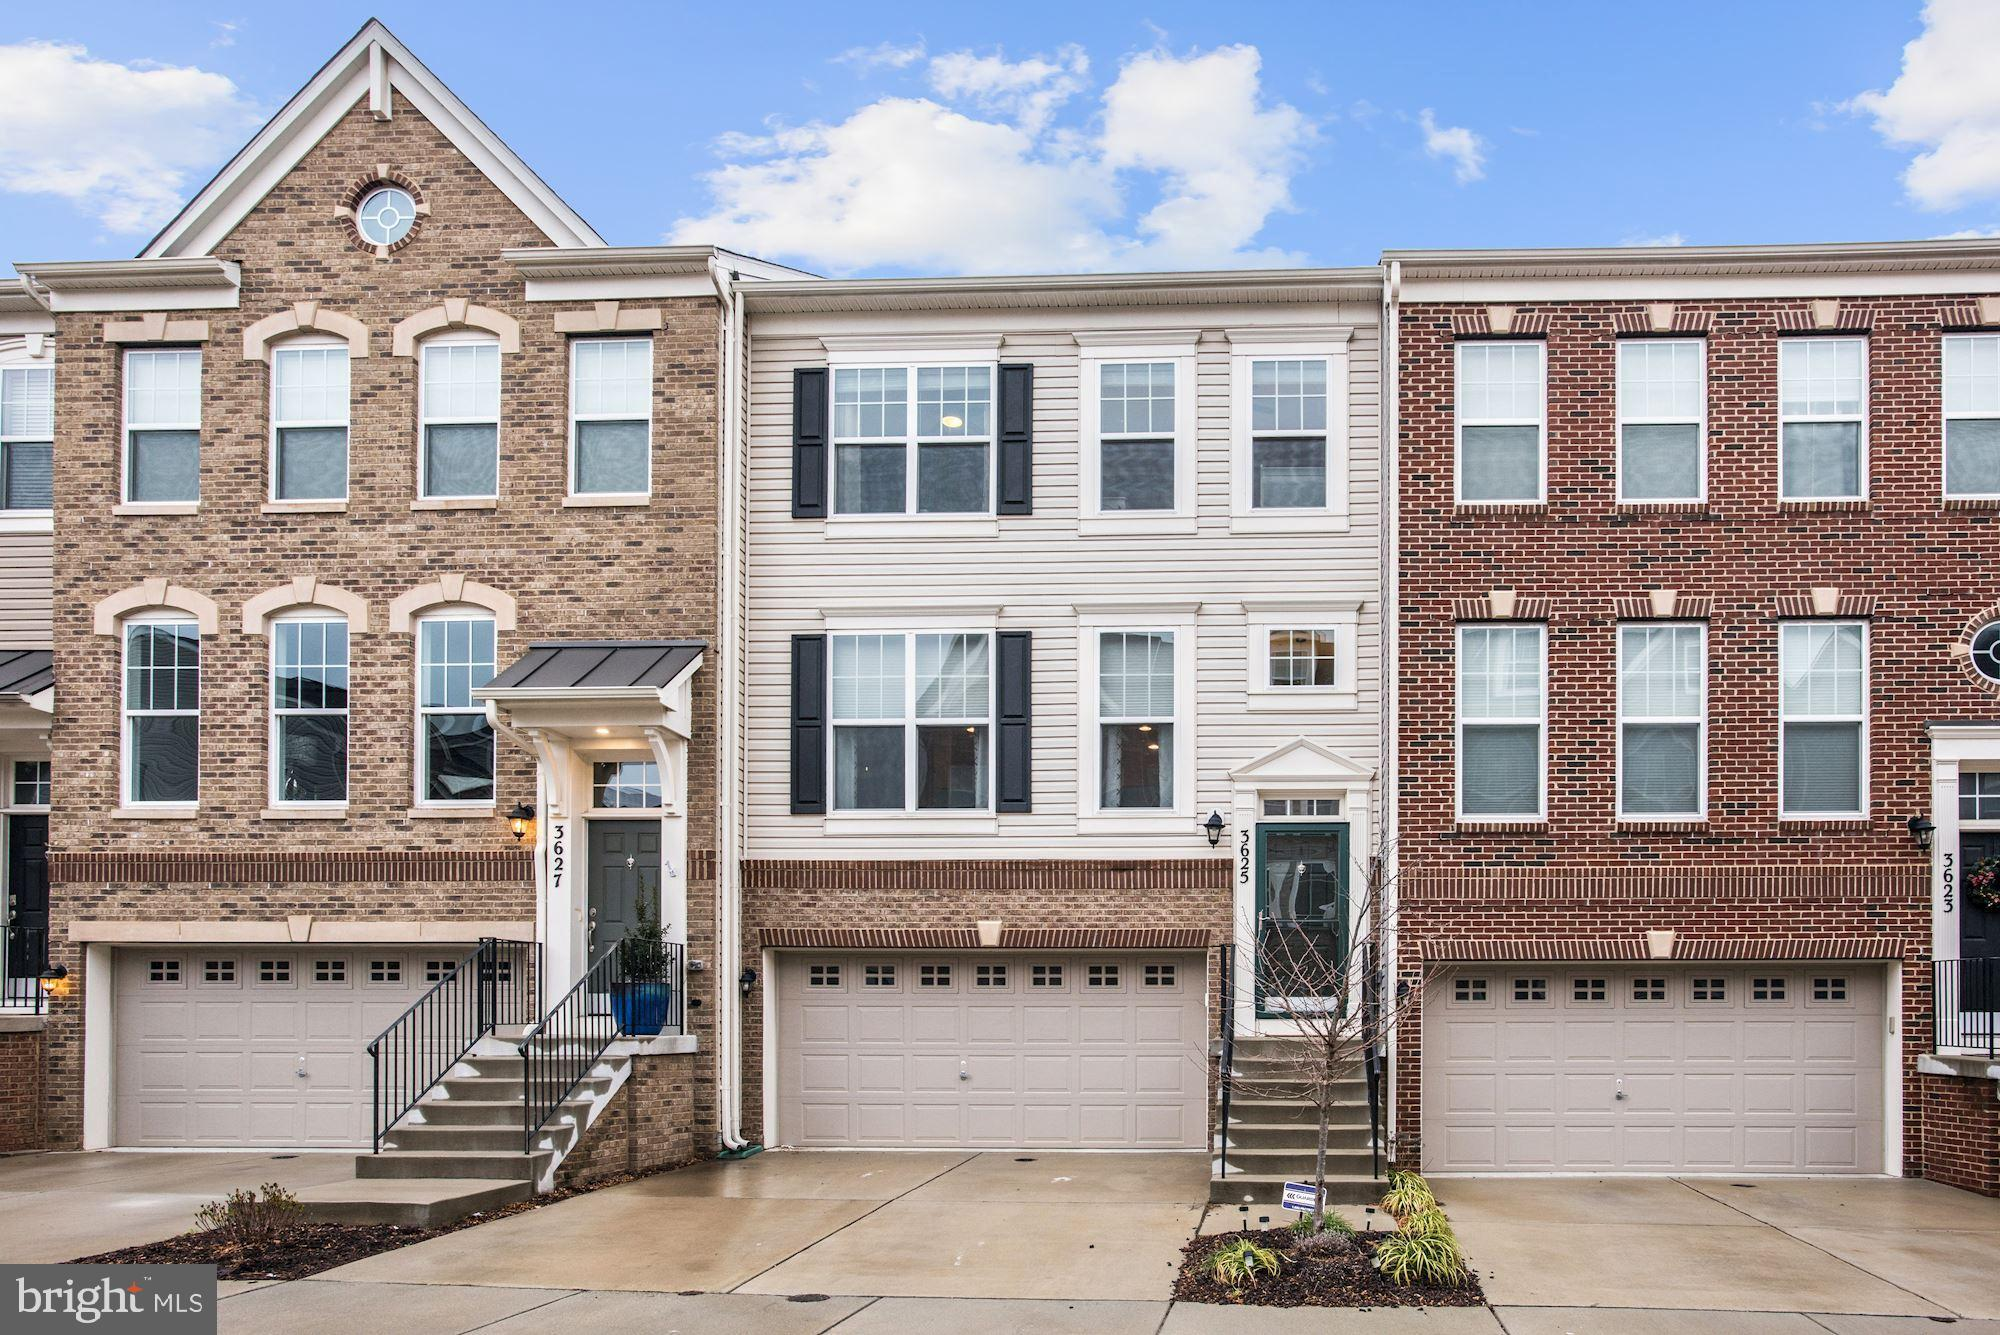 3625 SUMMER HOUSE STREET, SILVER SPRING, MD 20906